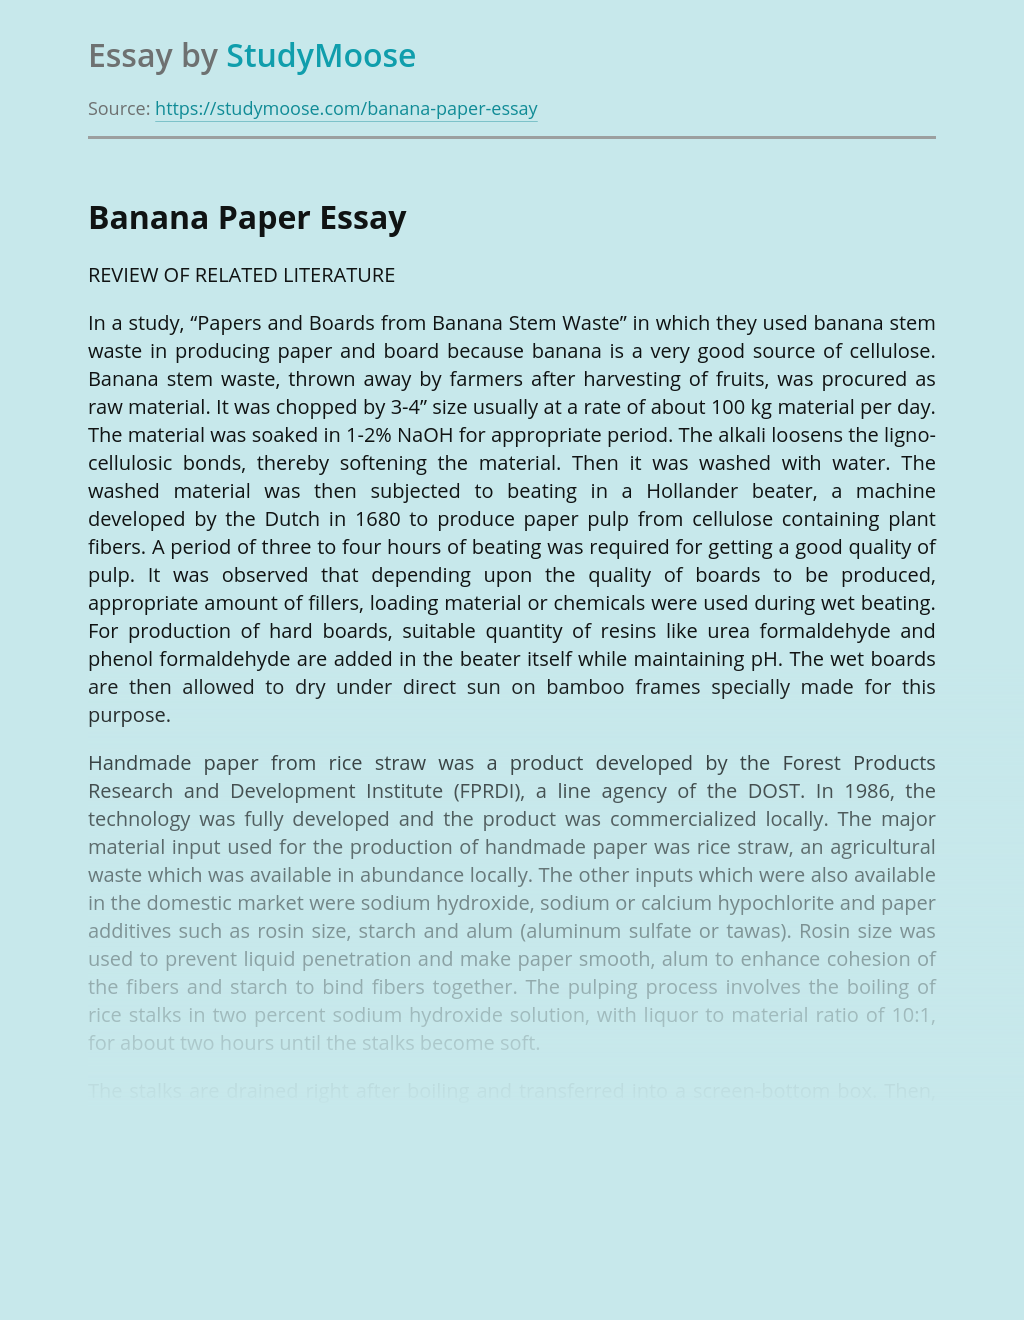 Papers and Boards from Banana Stem Waste